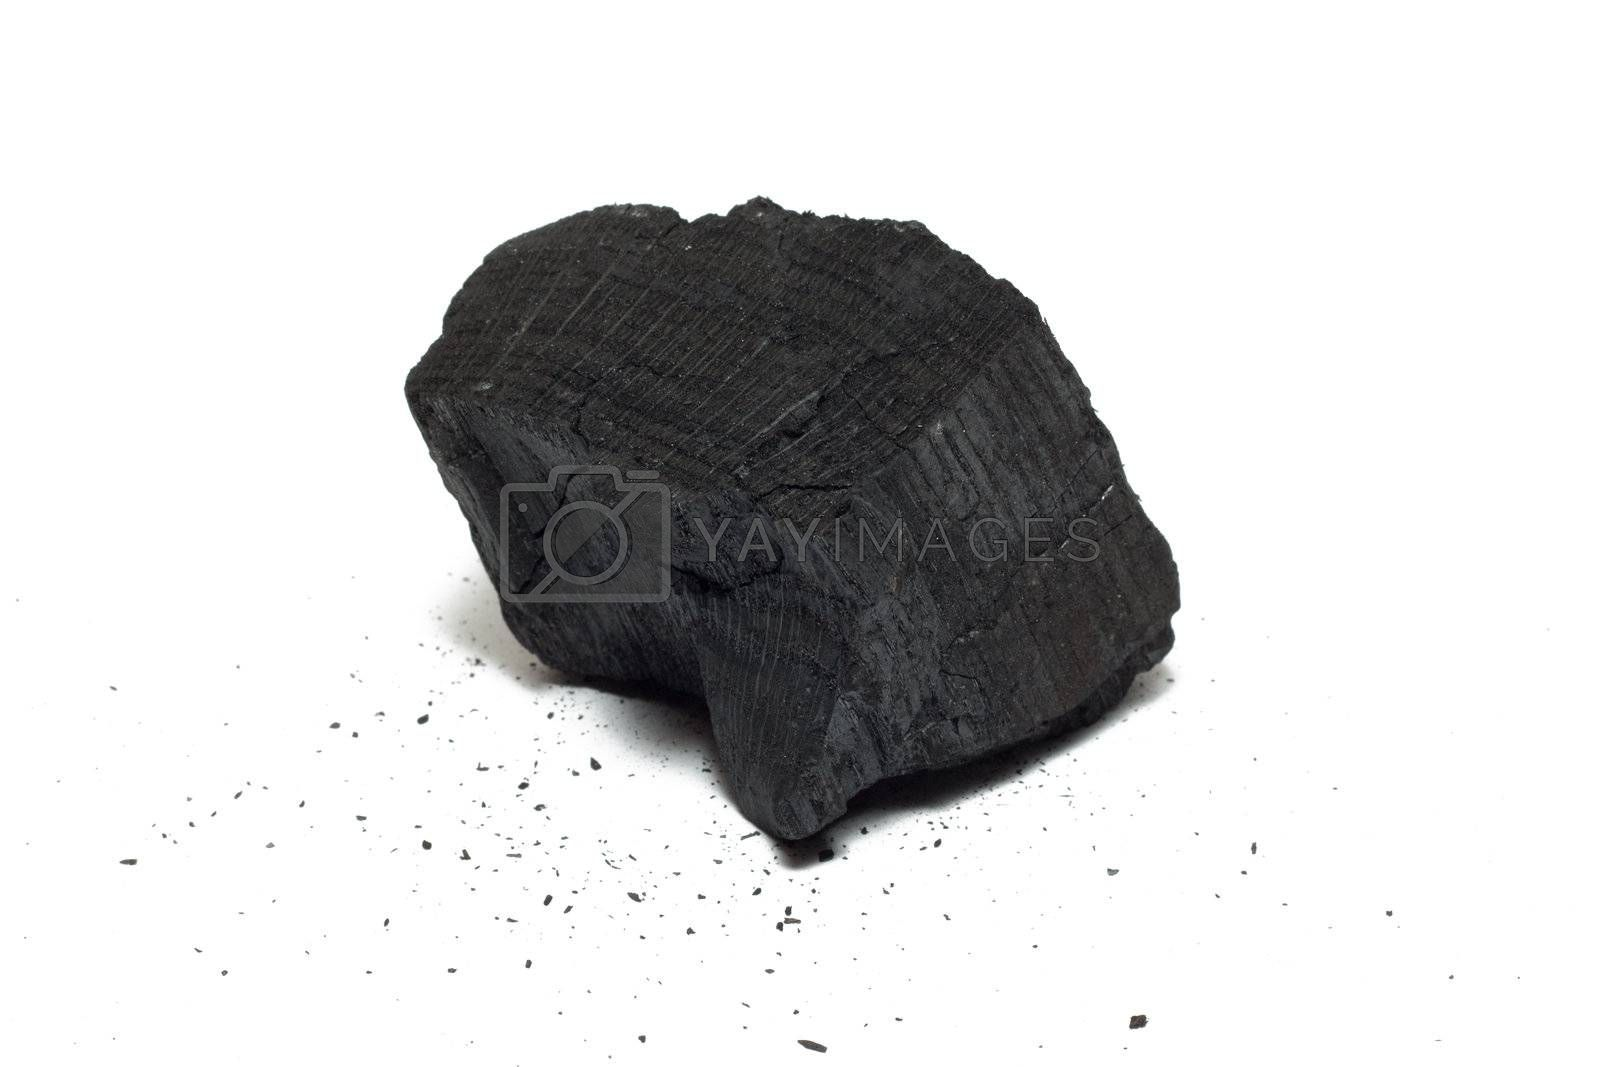 Bit of charcoal isolated on white with crums around